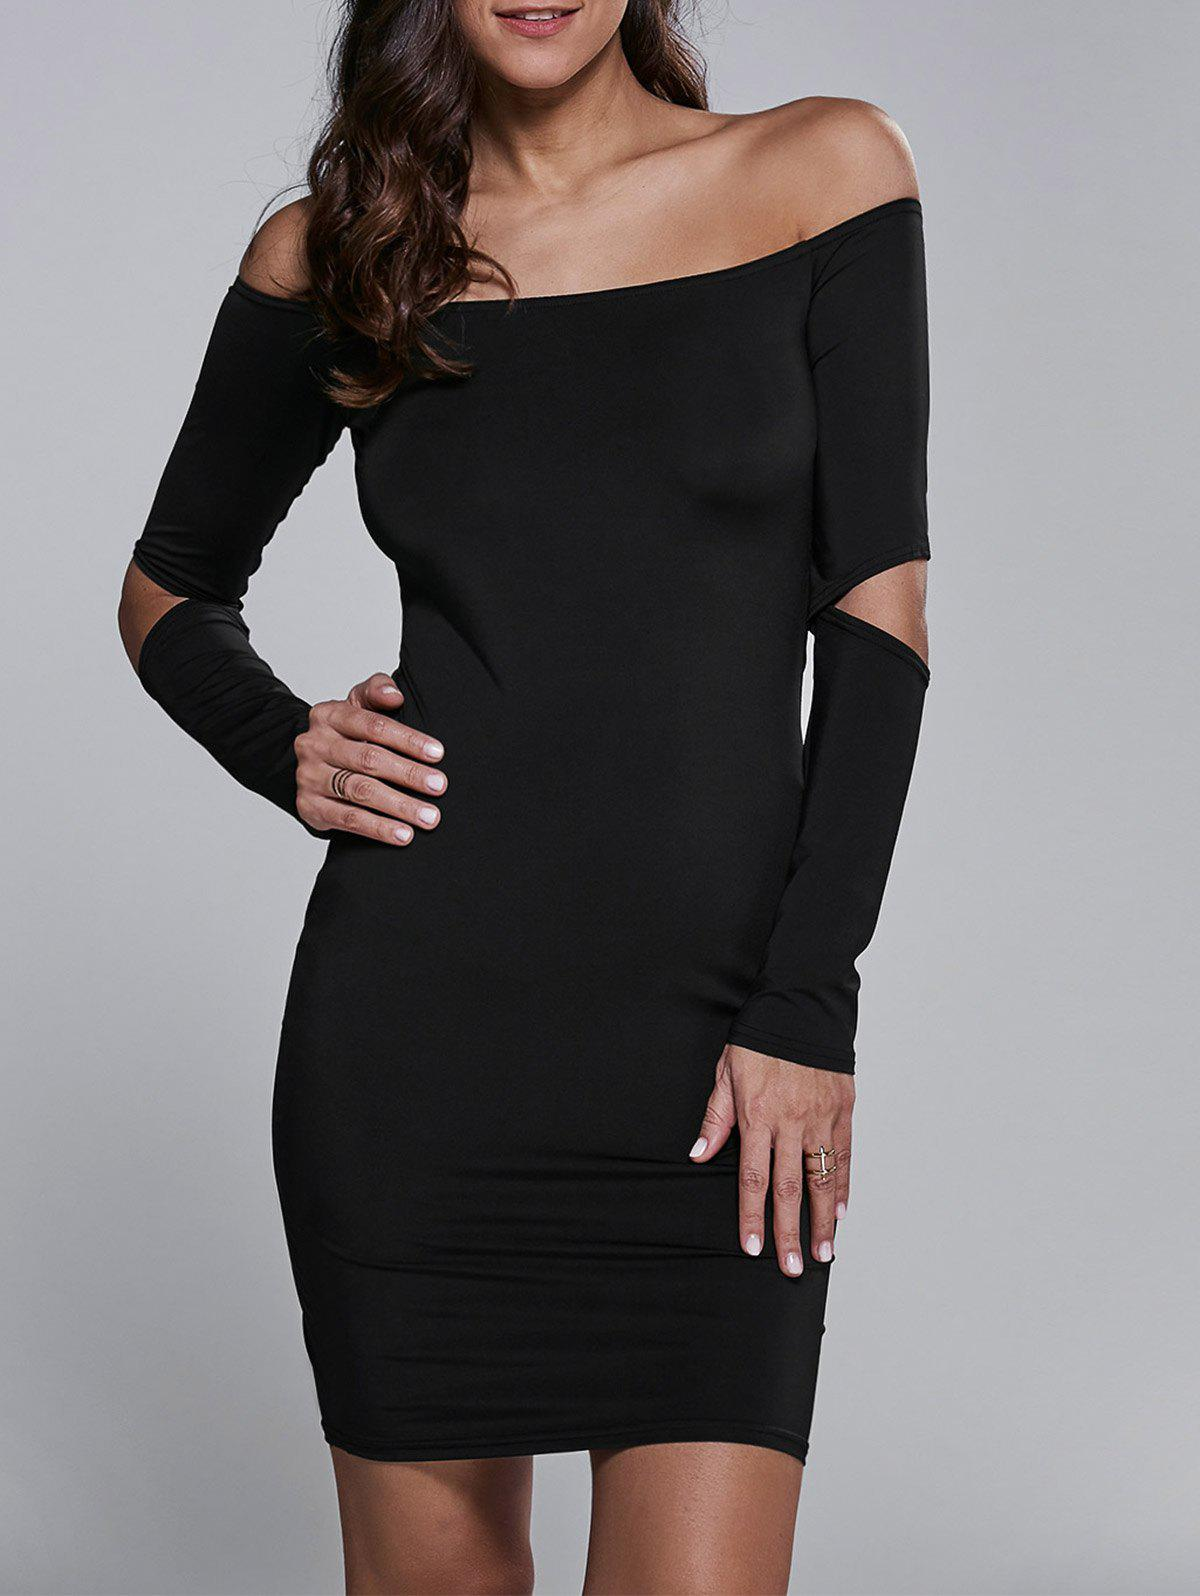 Off Shoulder Cut Out Short Cocktail Dress with Sleeves - BLACK S